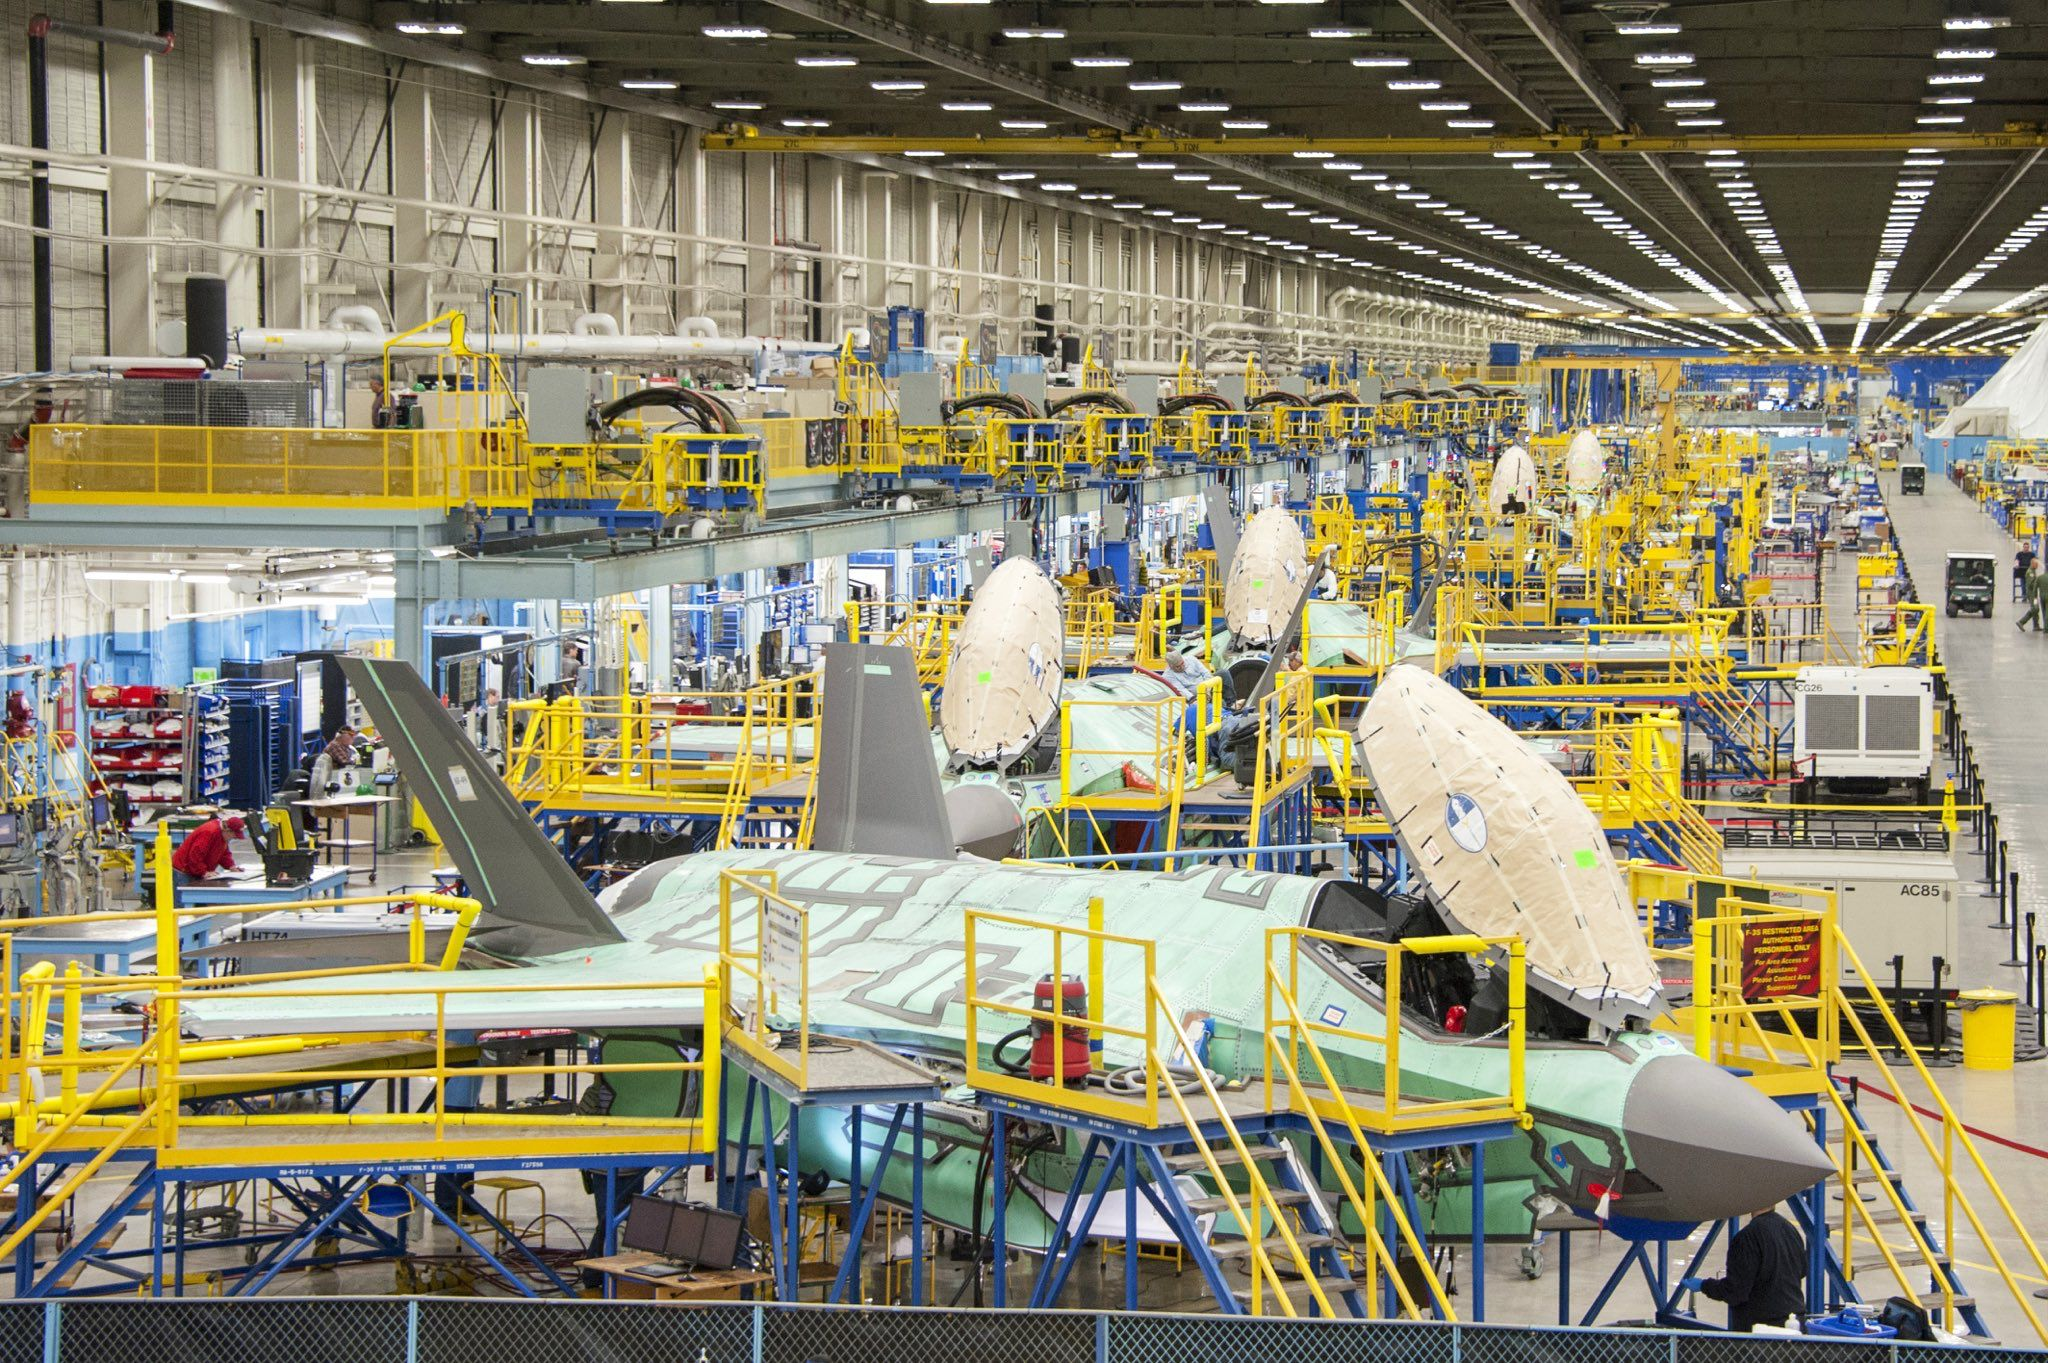 Pin By Steve K On Aircraft Manufacturing Texas North